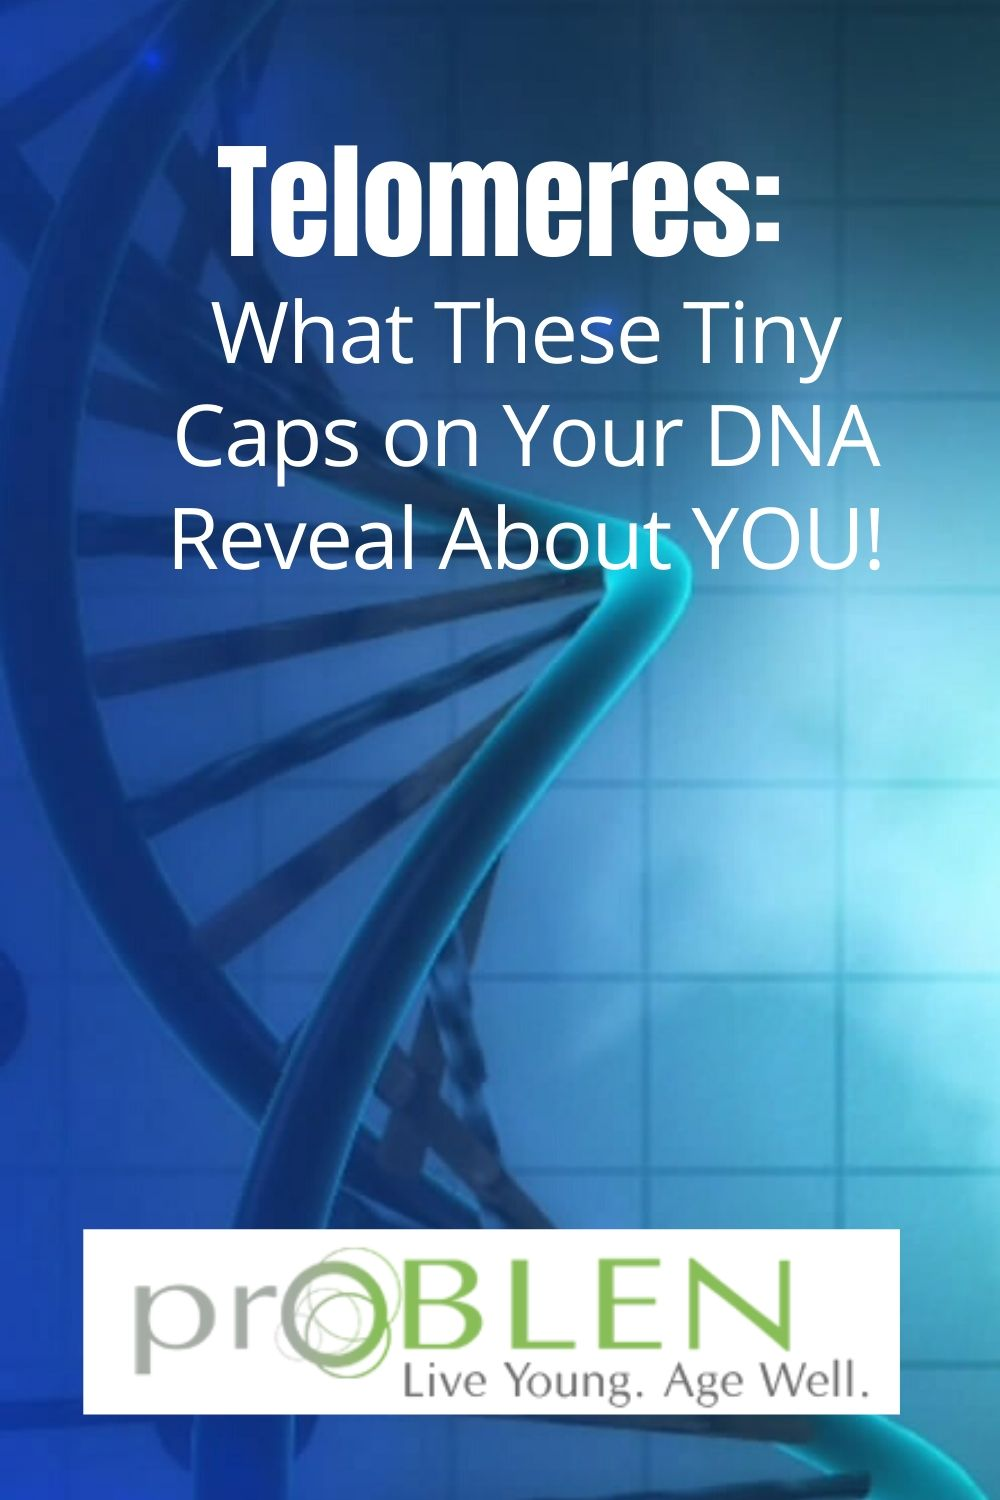 Telomere DNA booster anti-aging caps on DNA improve health